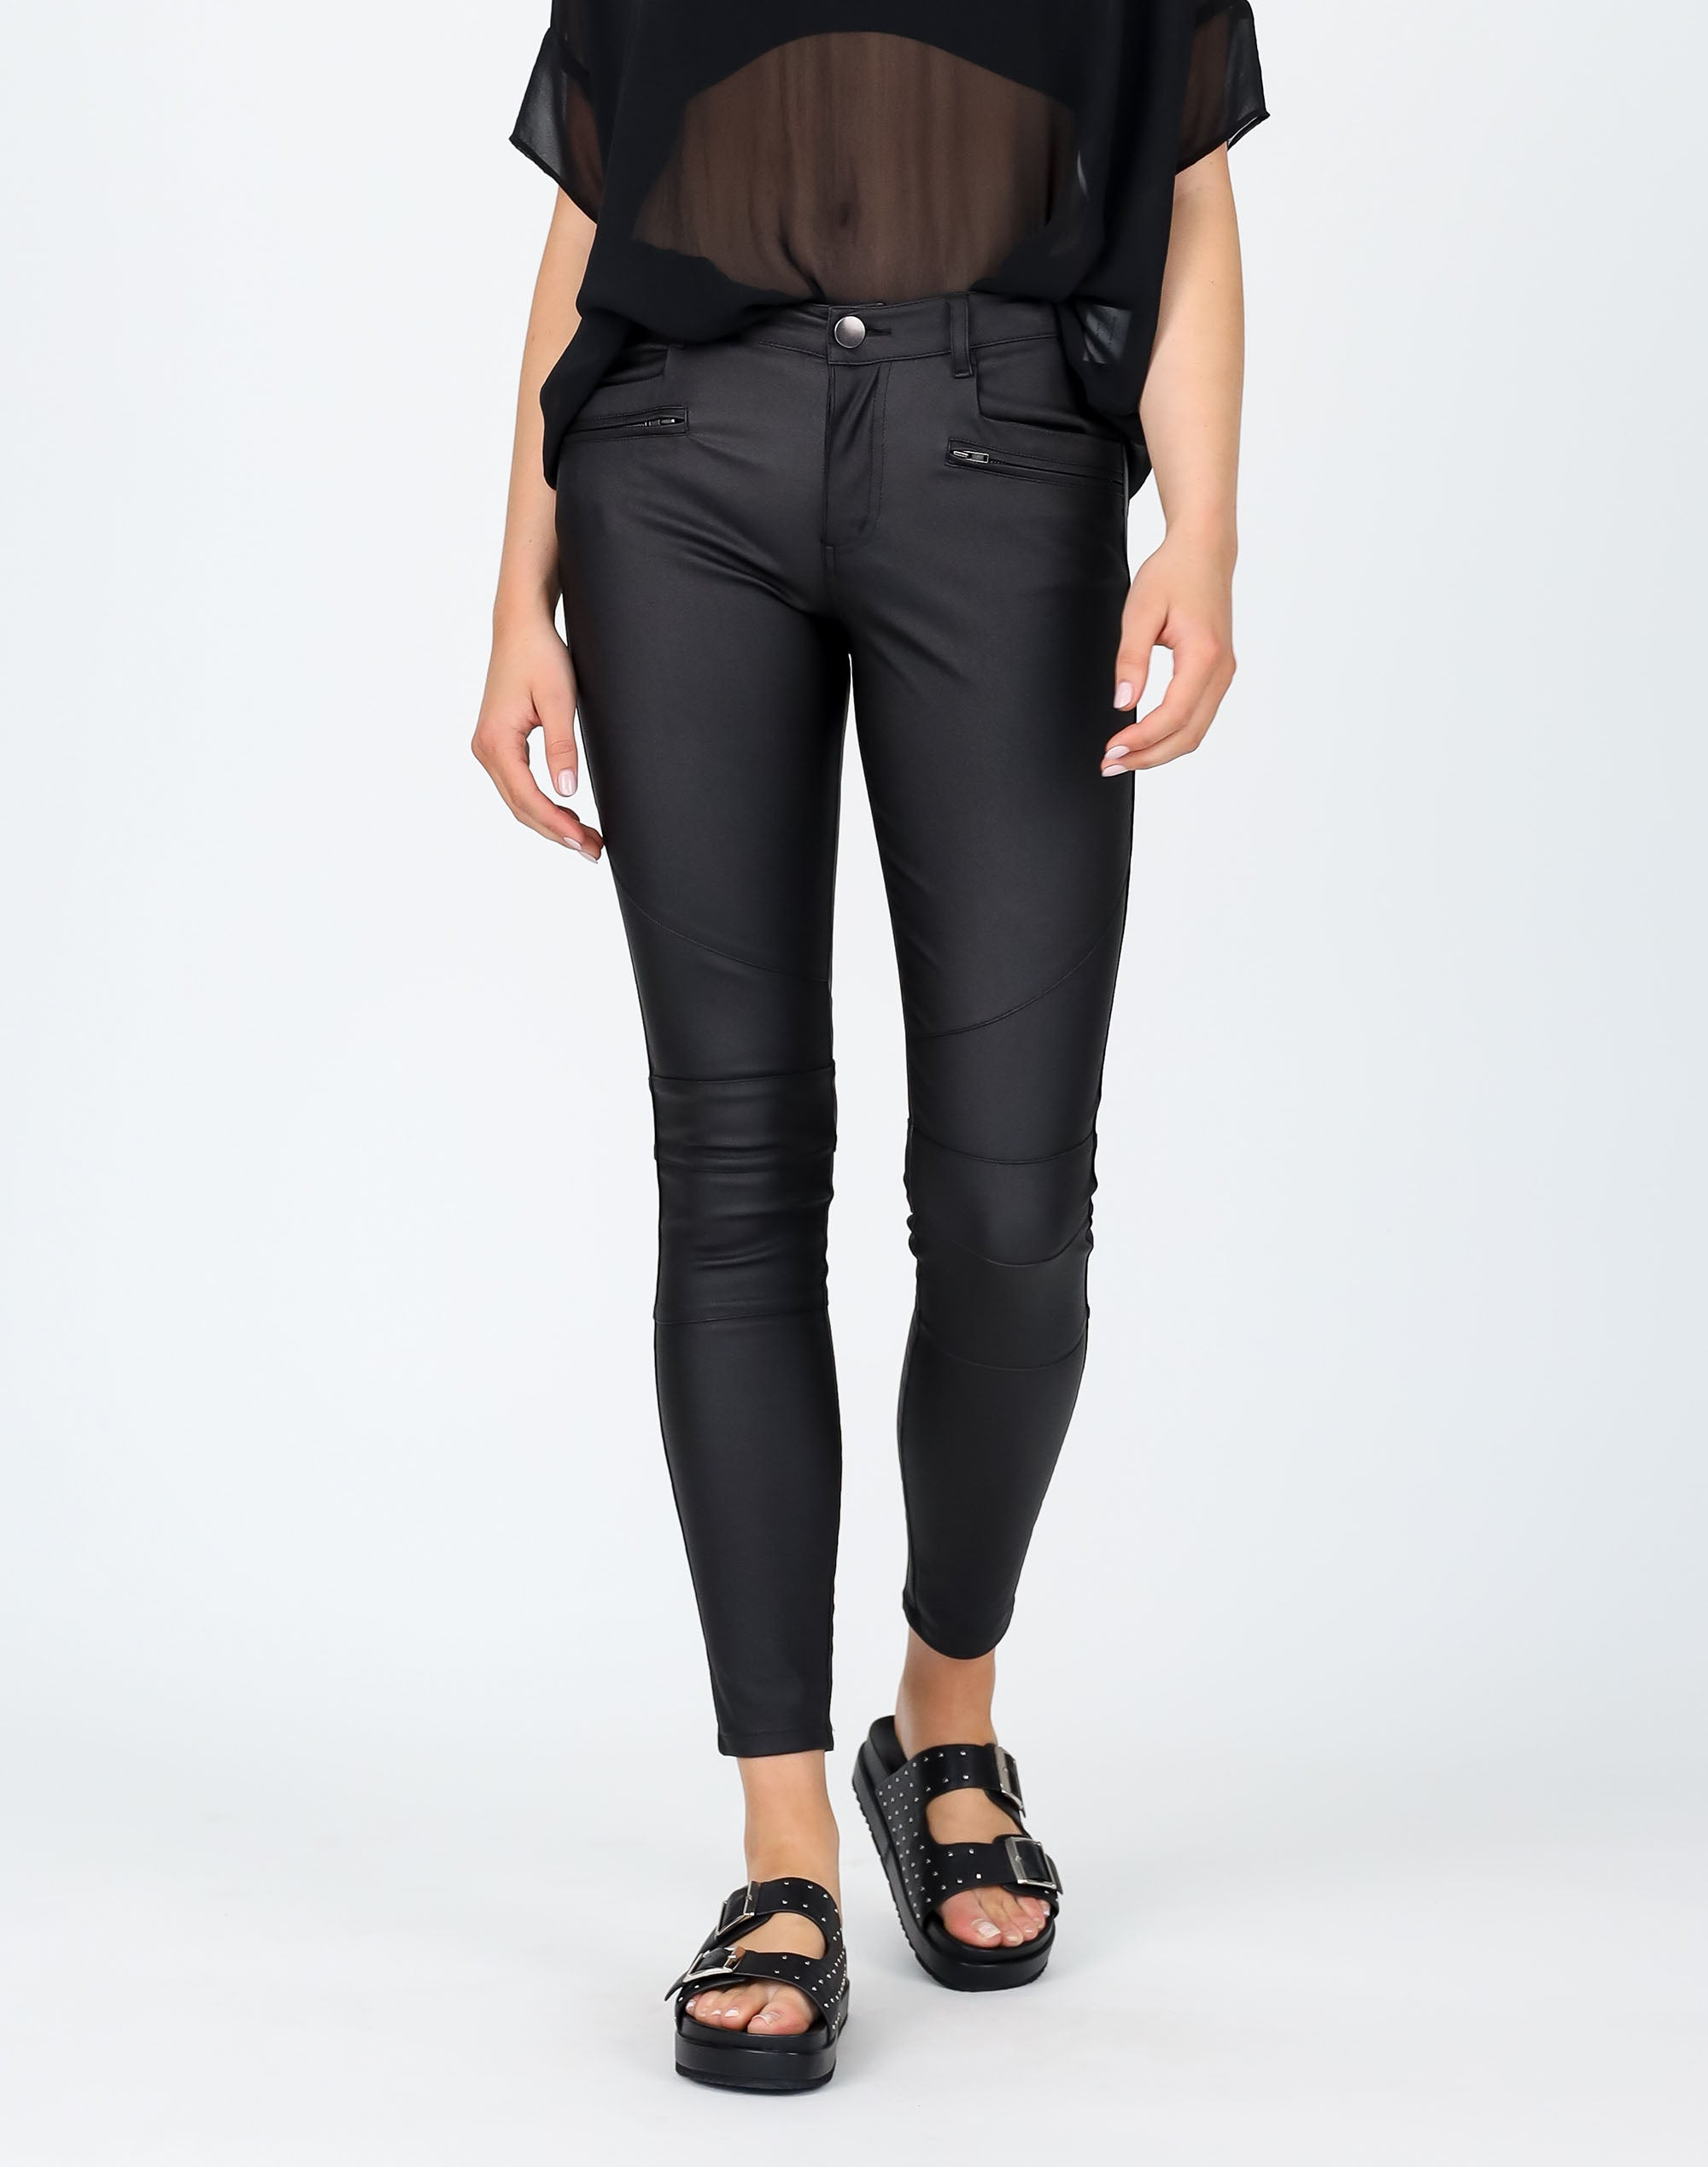 Mid Rise Zip Pocket Coated Pant